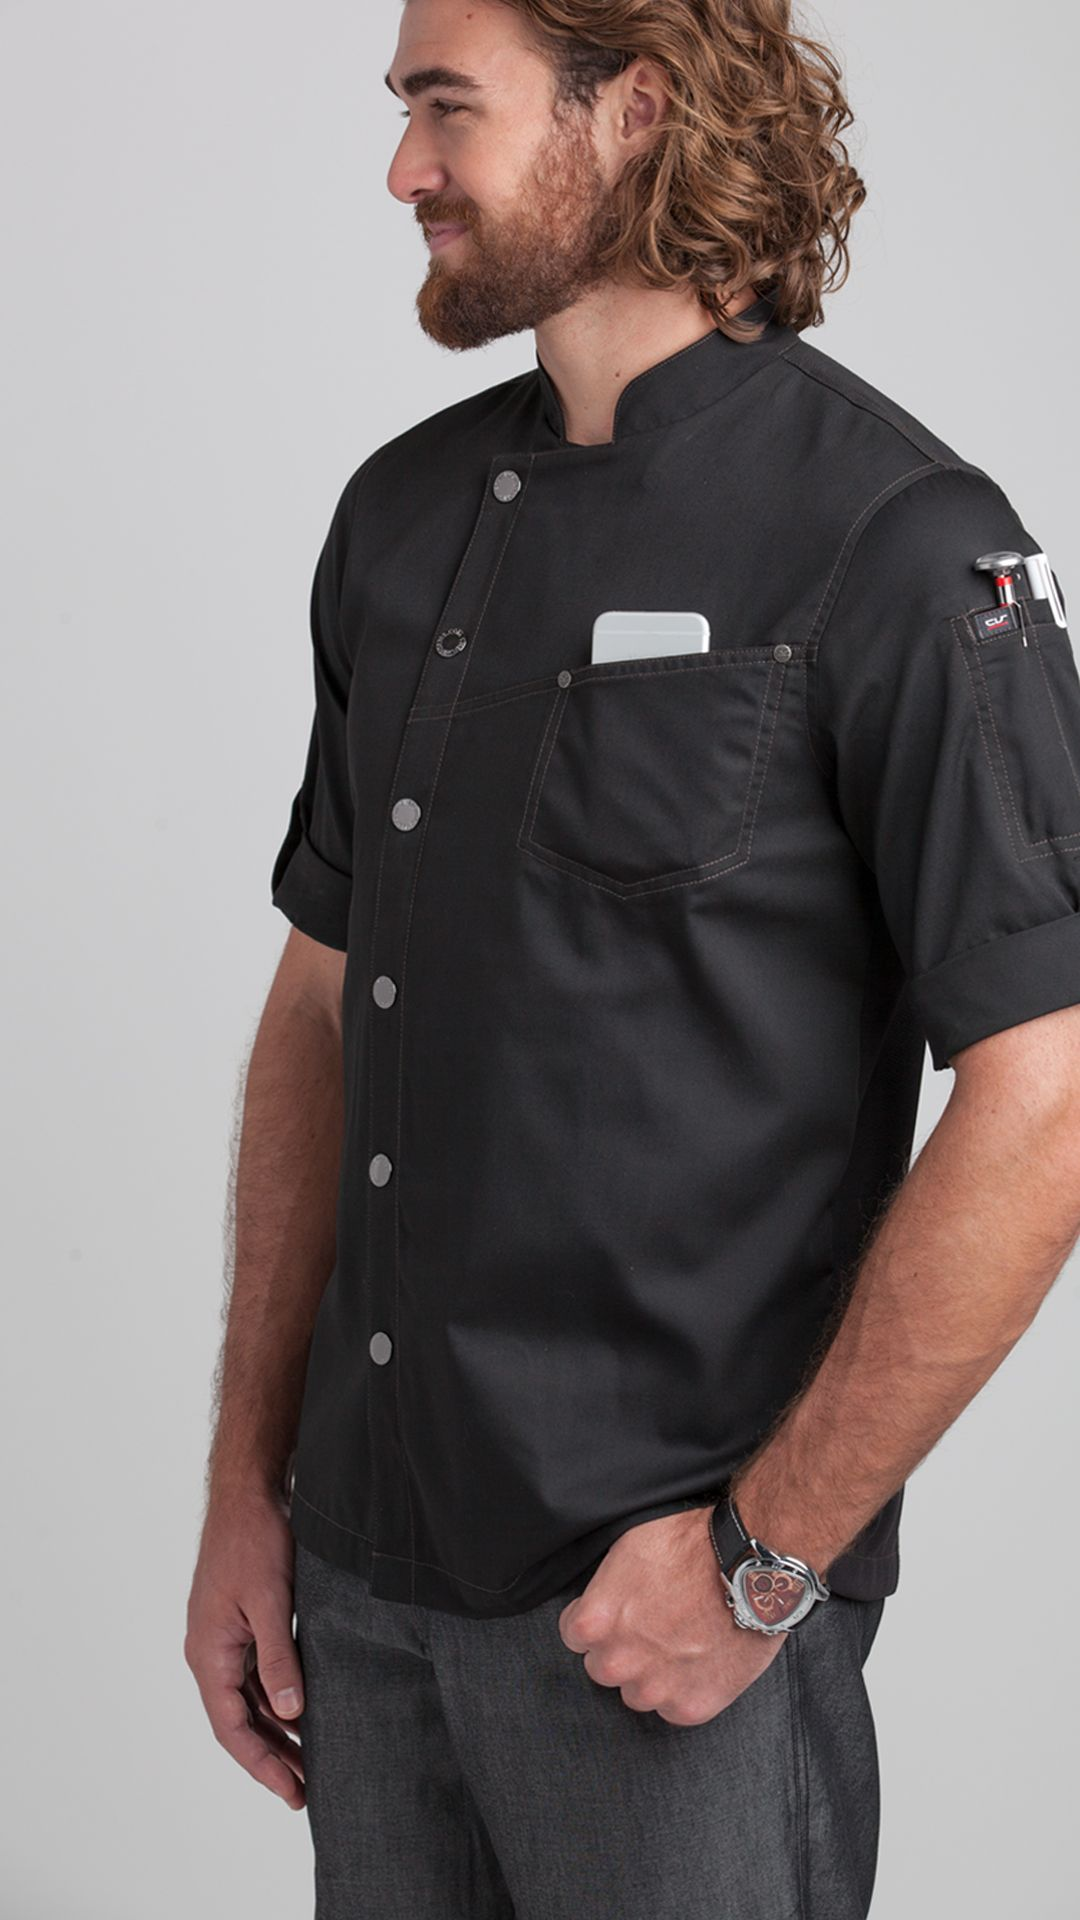 Fresh ready for the kitchen chefuniforms chefcoats